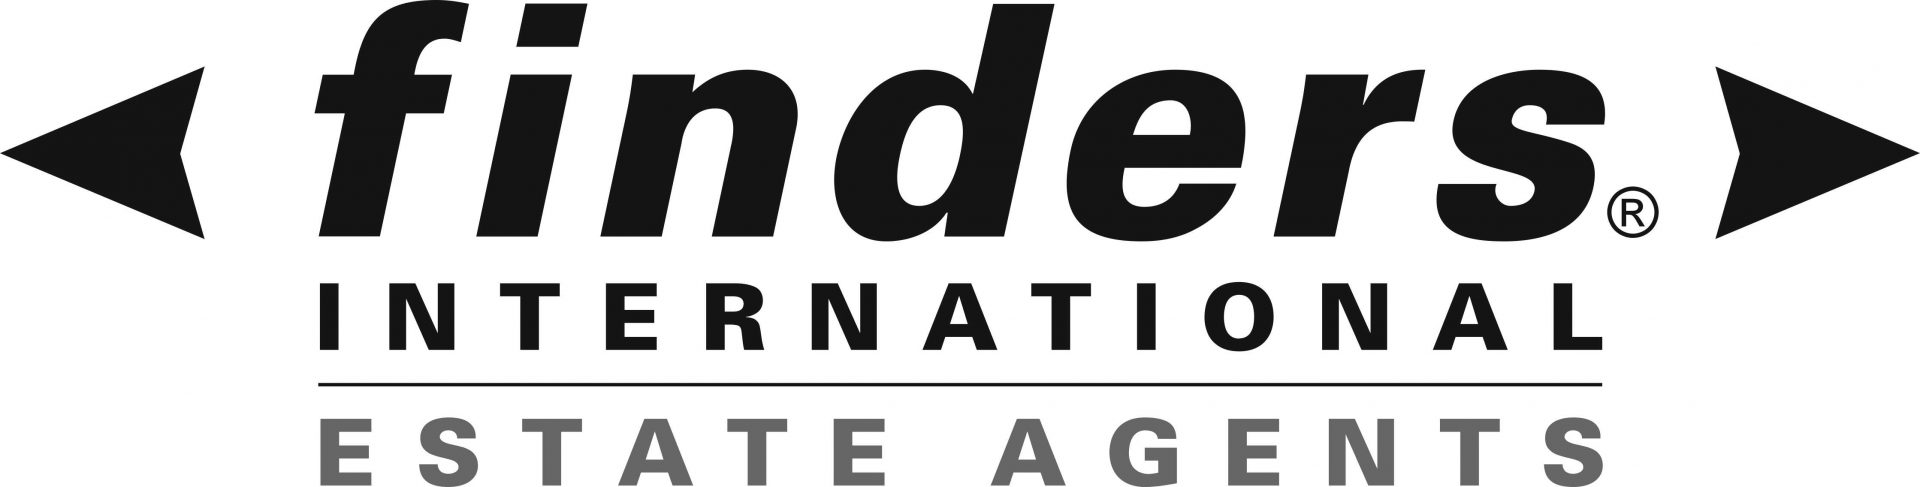 Finders Estate Agents (chosen logo)